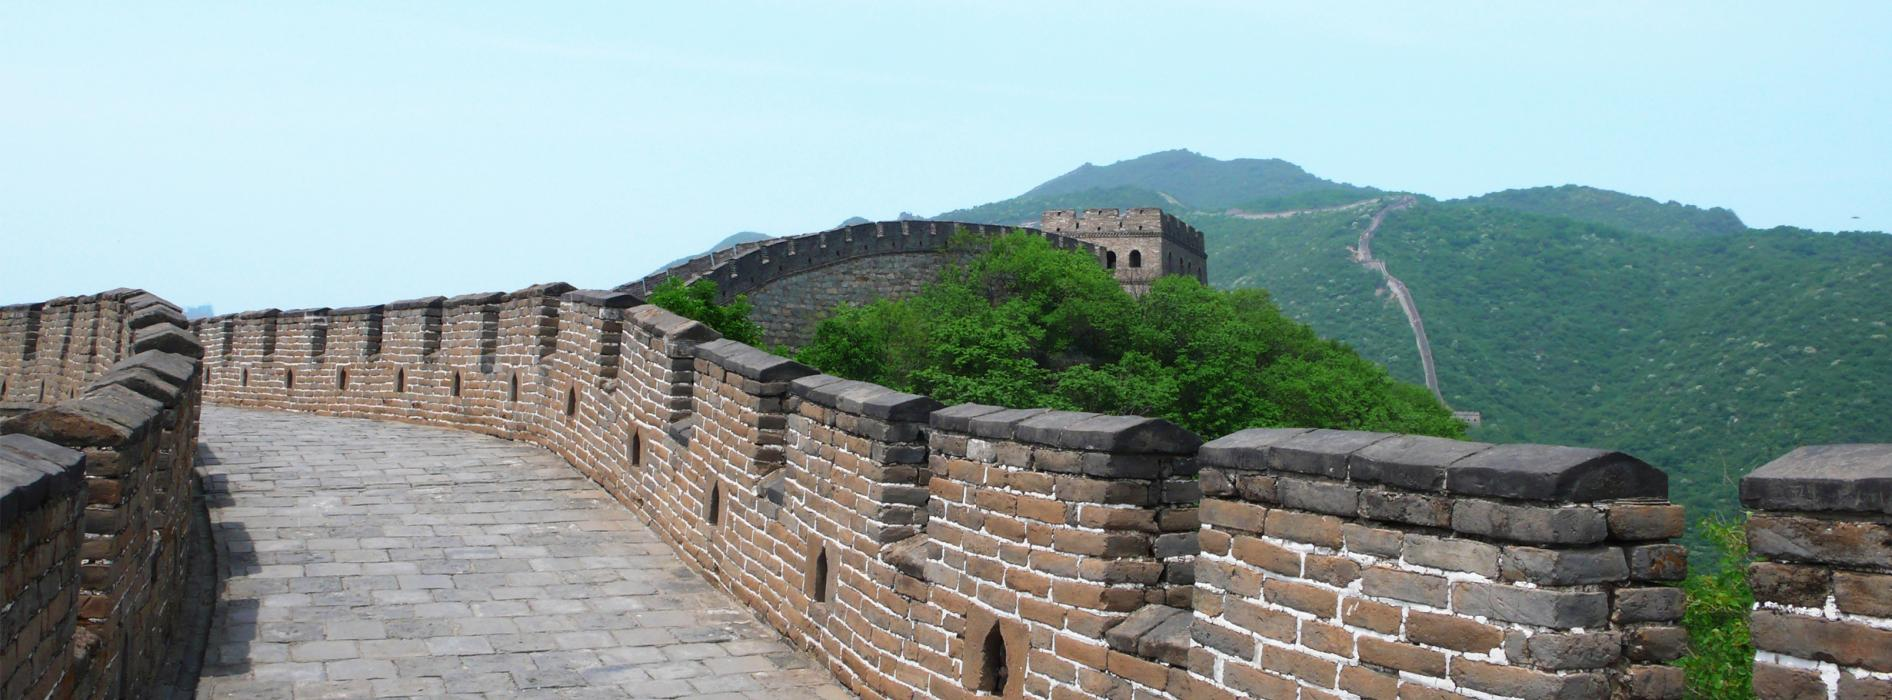 Great wall cover.jpg